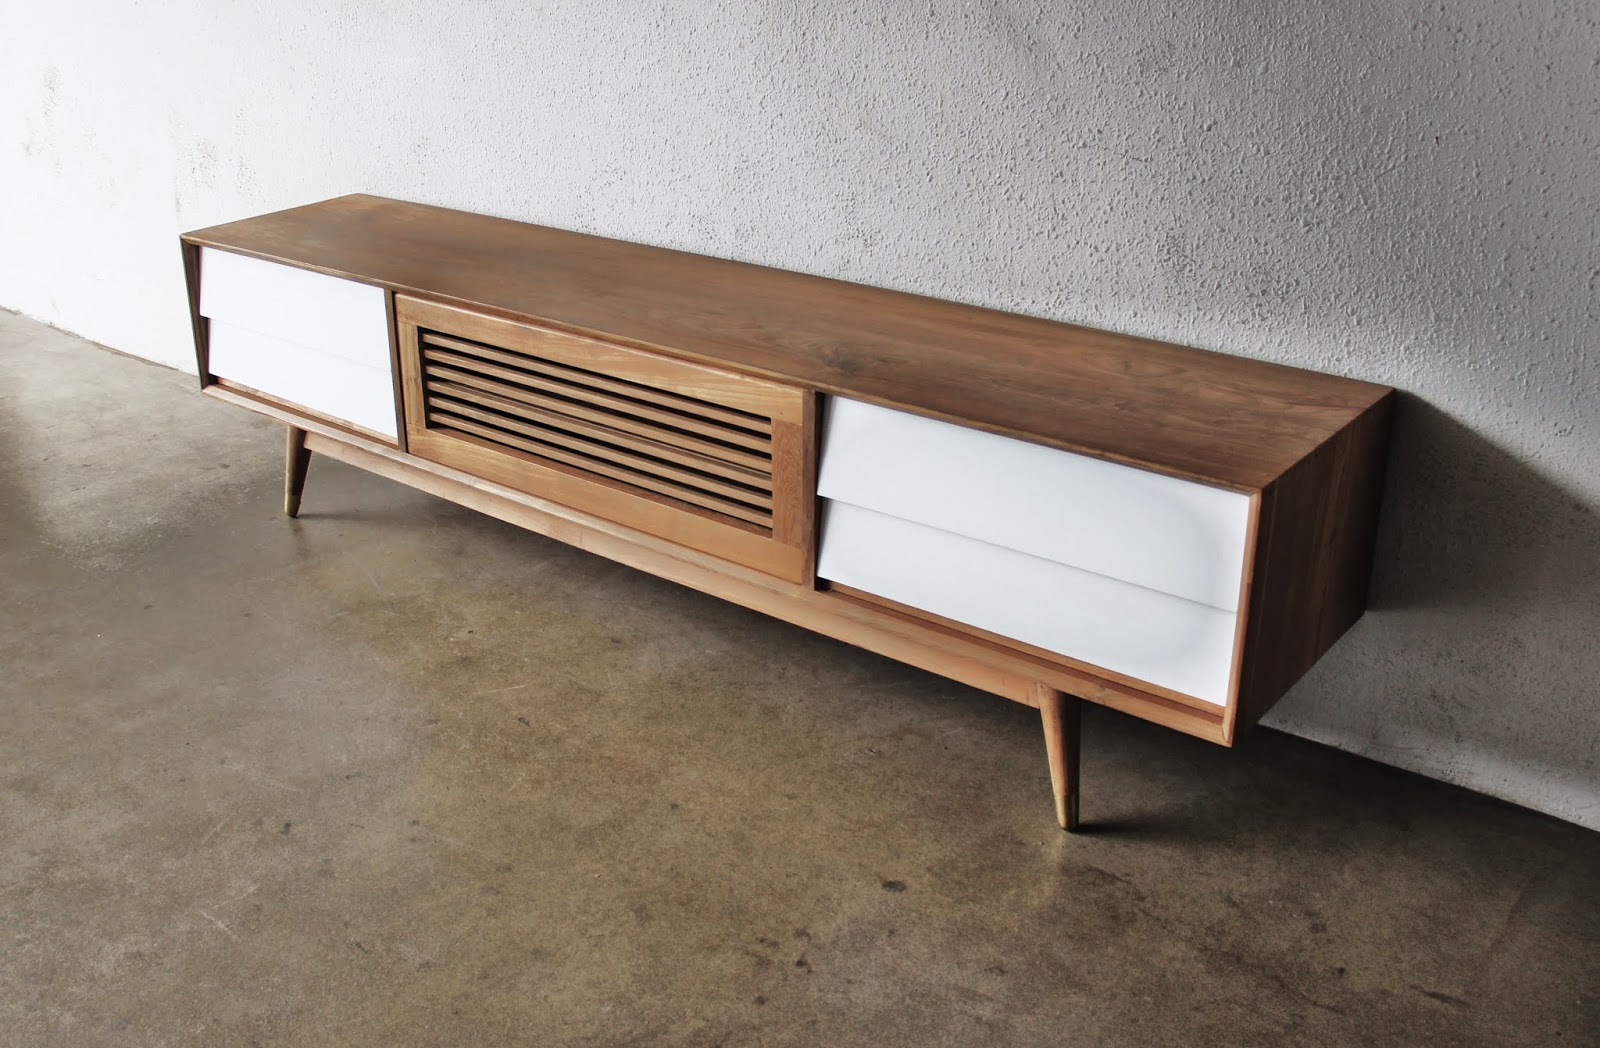 SECOND CHARM FURNITURE - MID CENTURY MODERN INFLUENCE ...